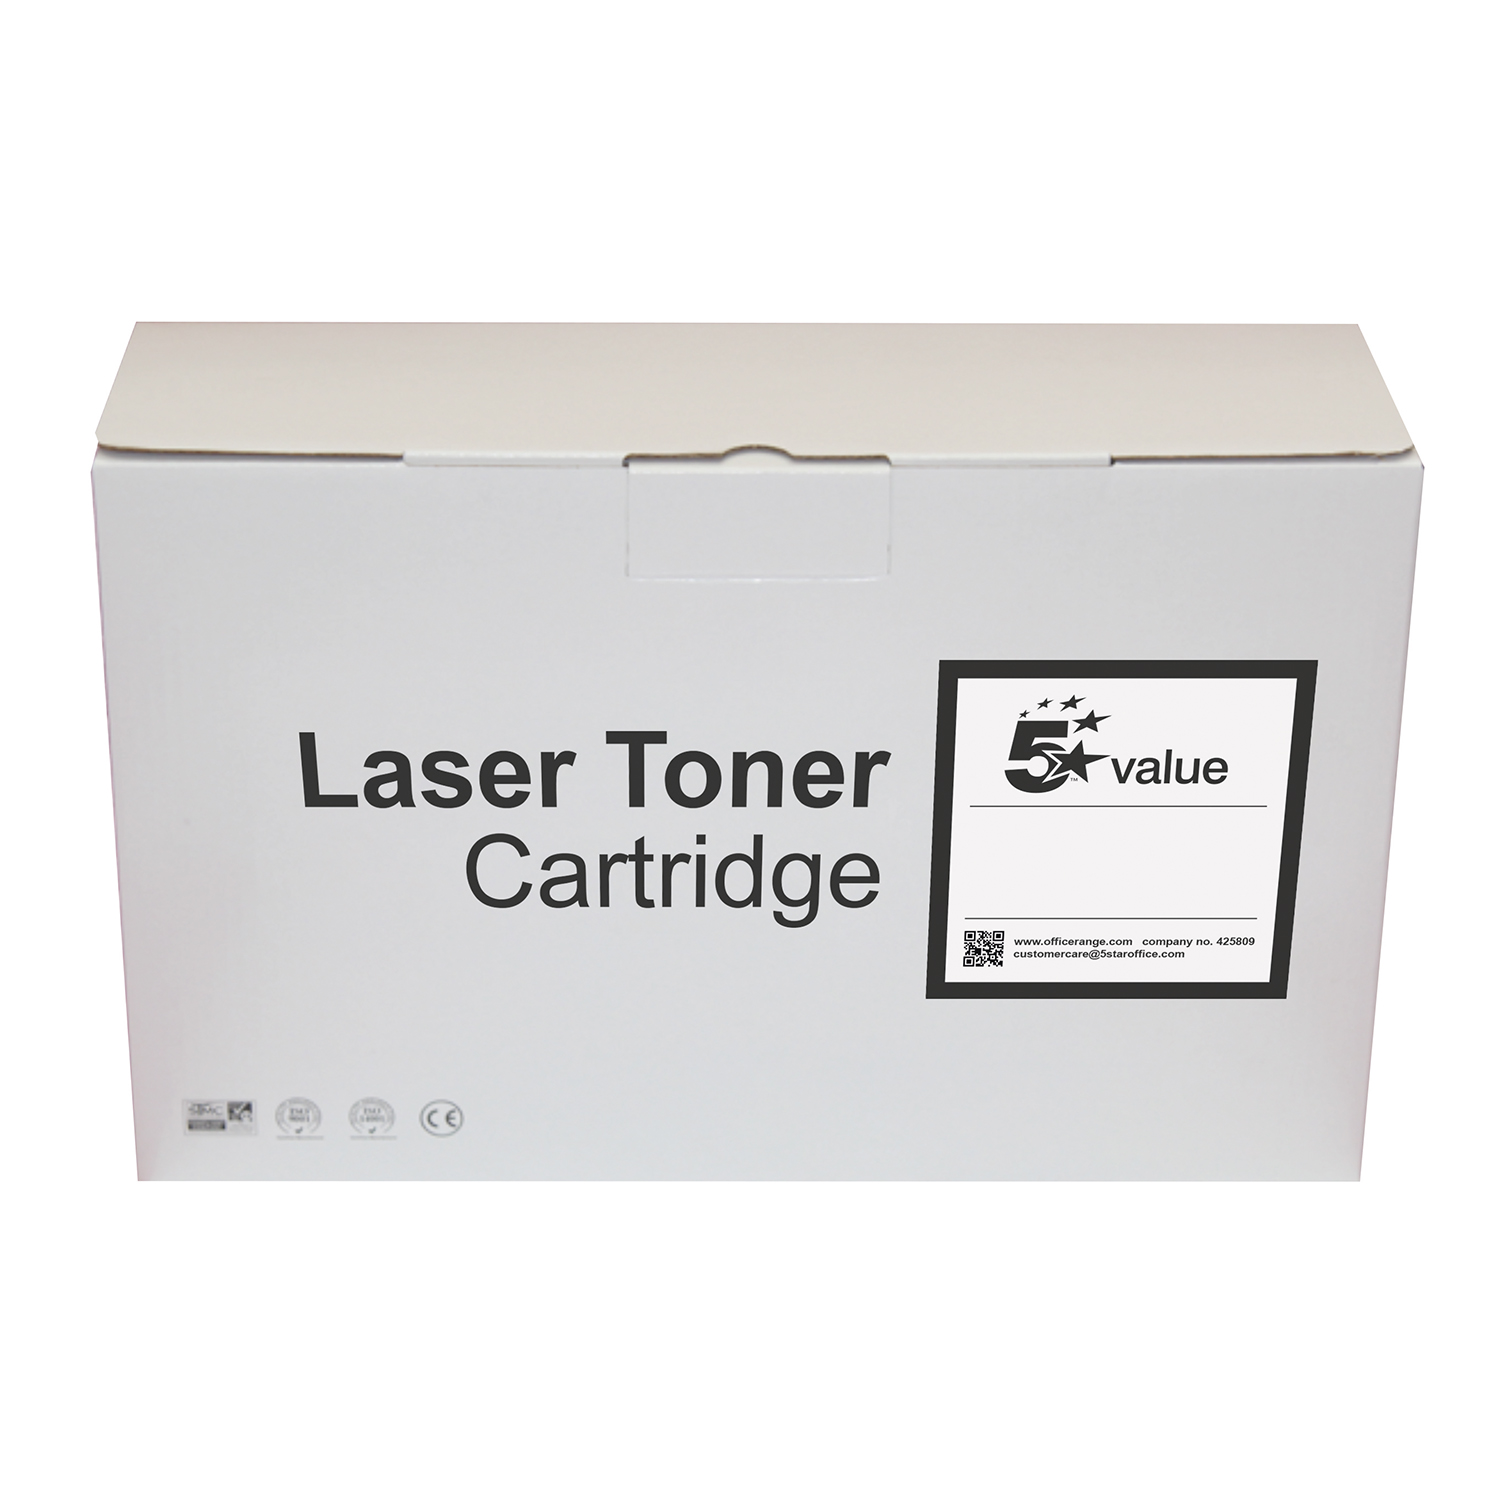 Laser Toner Cartridges 5 Star Value HP 125A Toner Cartridge Yellow CB542A